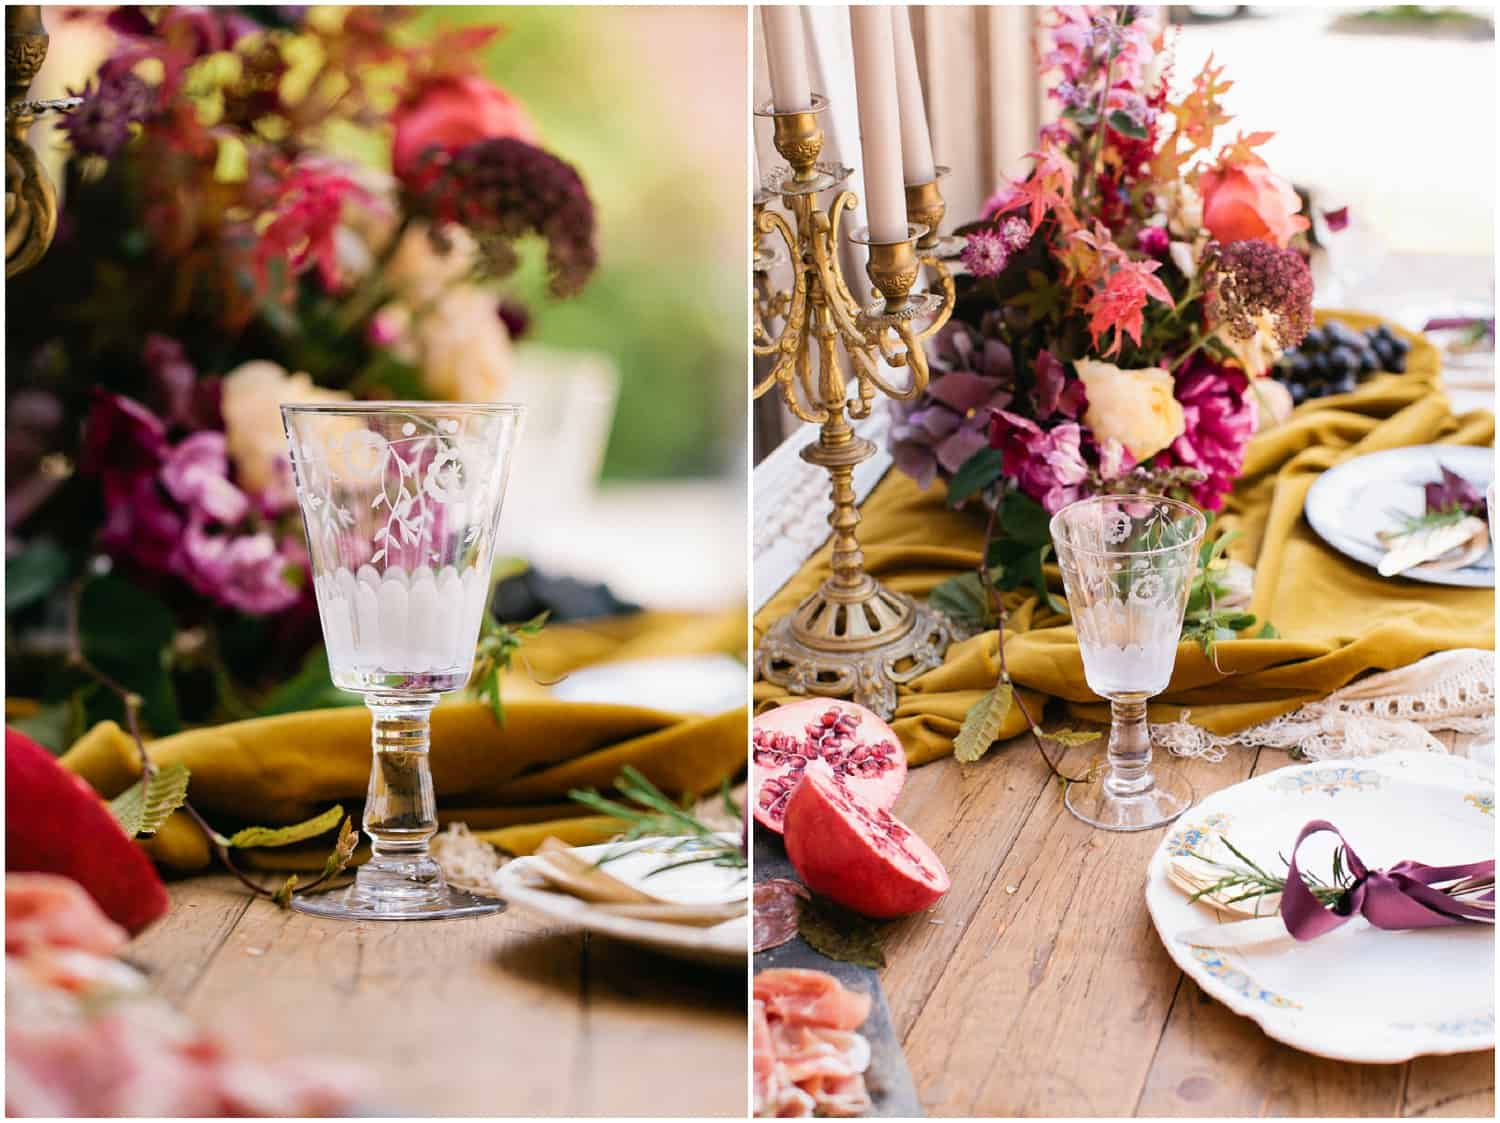 The Great Event, event hire, Boho Luxe inspiration, Joanna Game Flowers, Rosie Anderson Photography